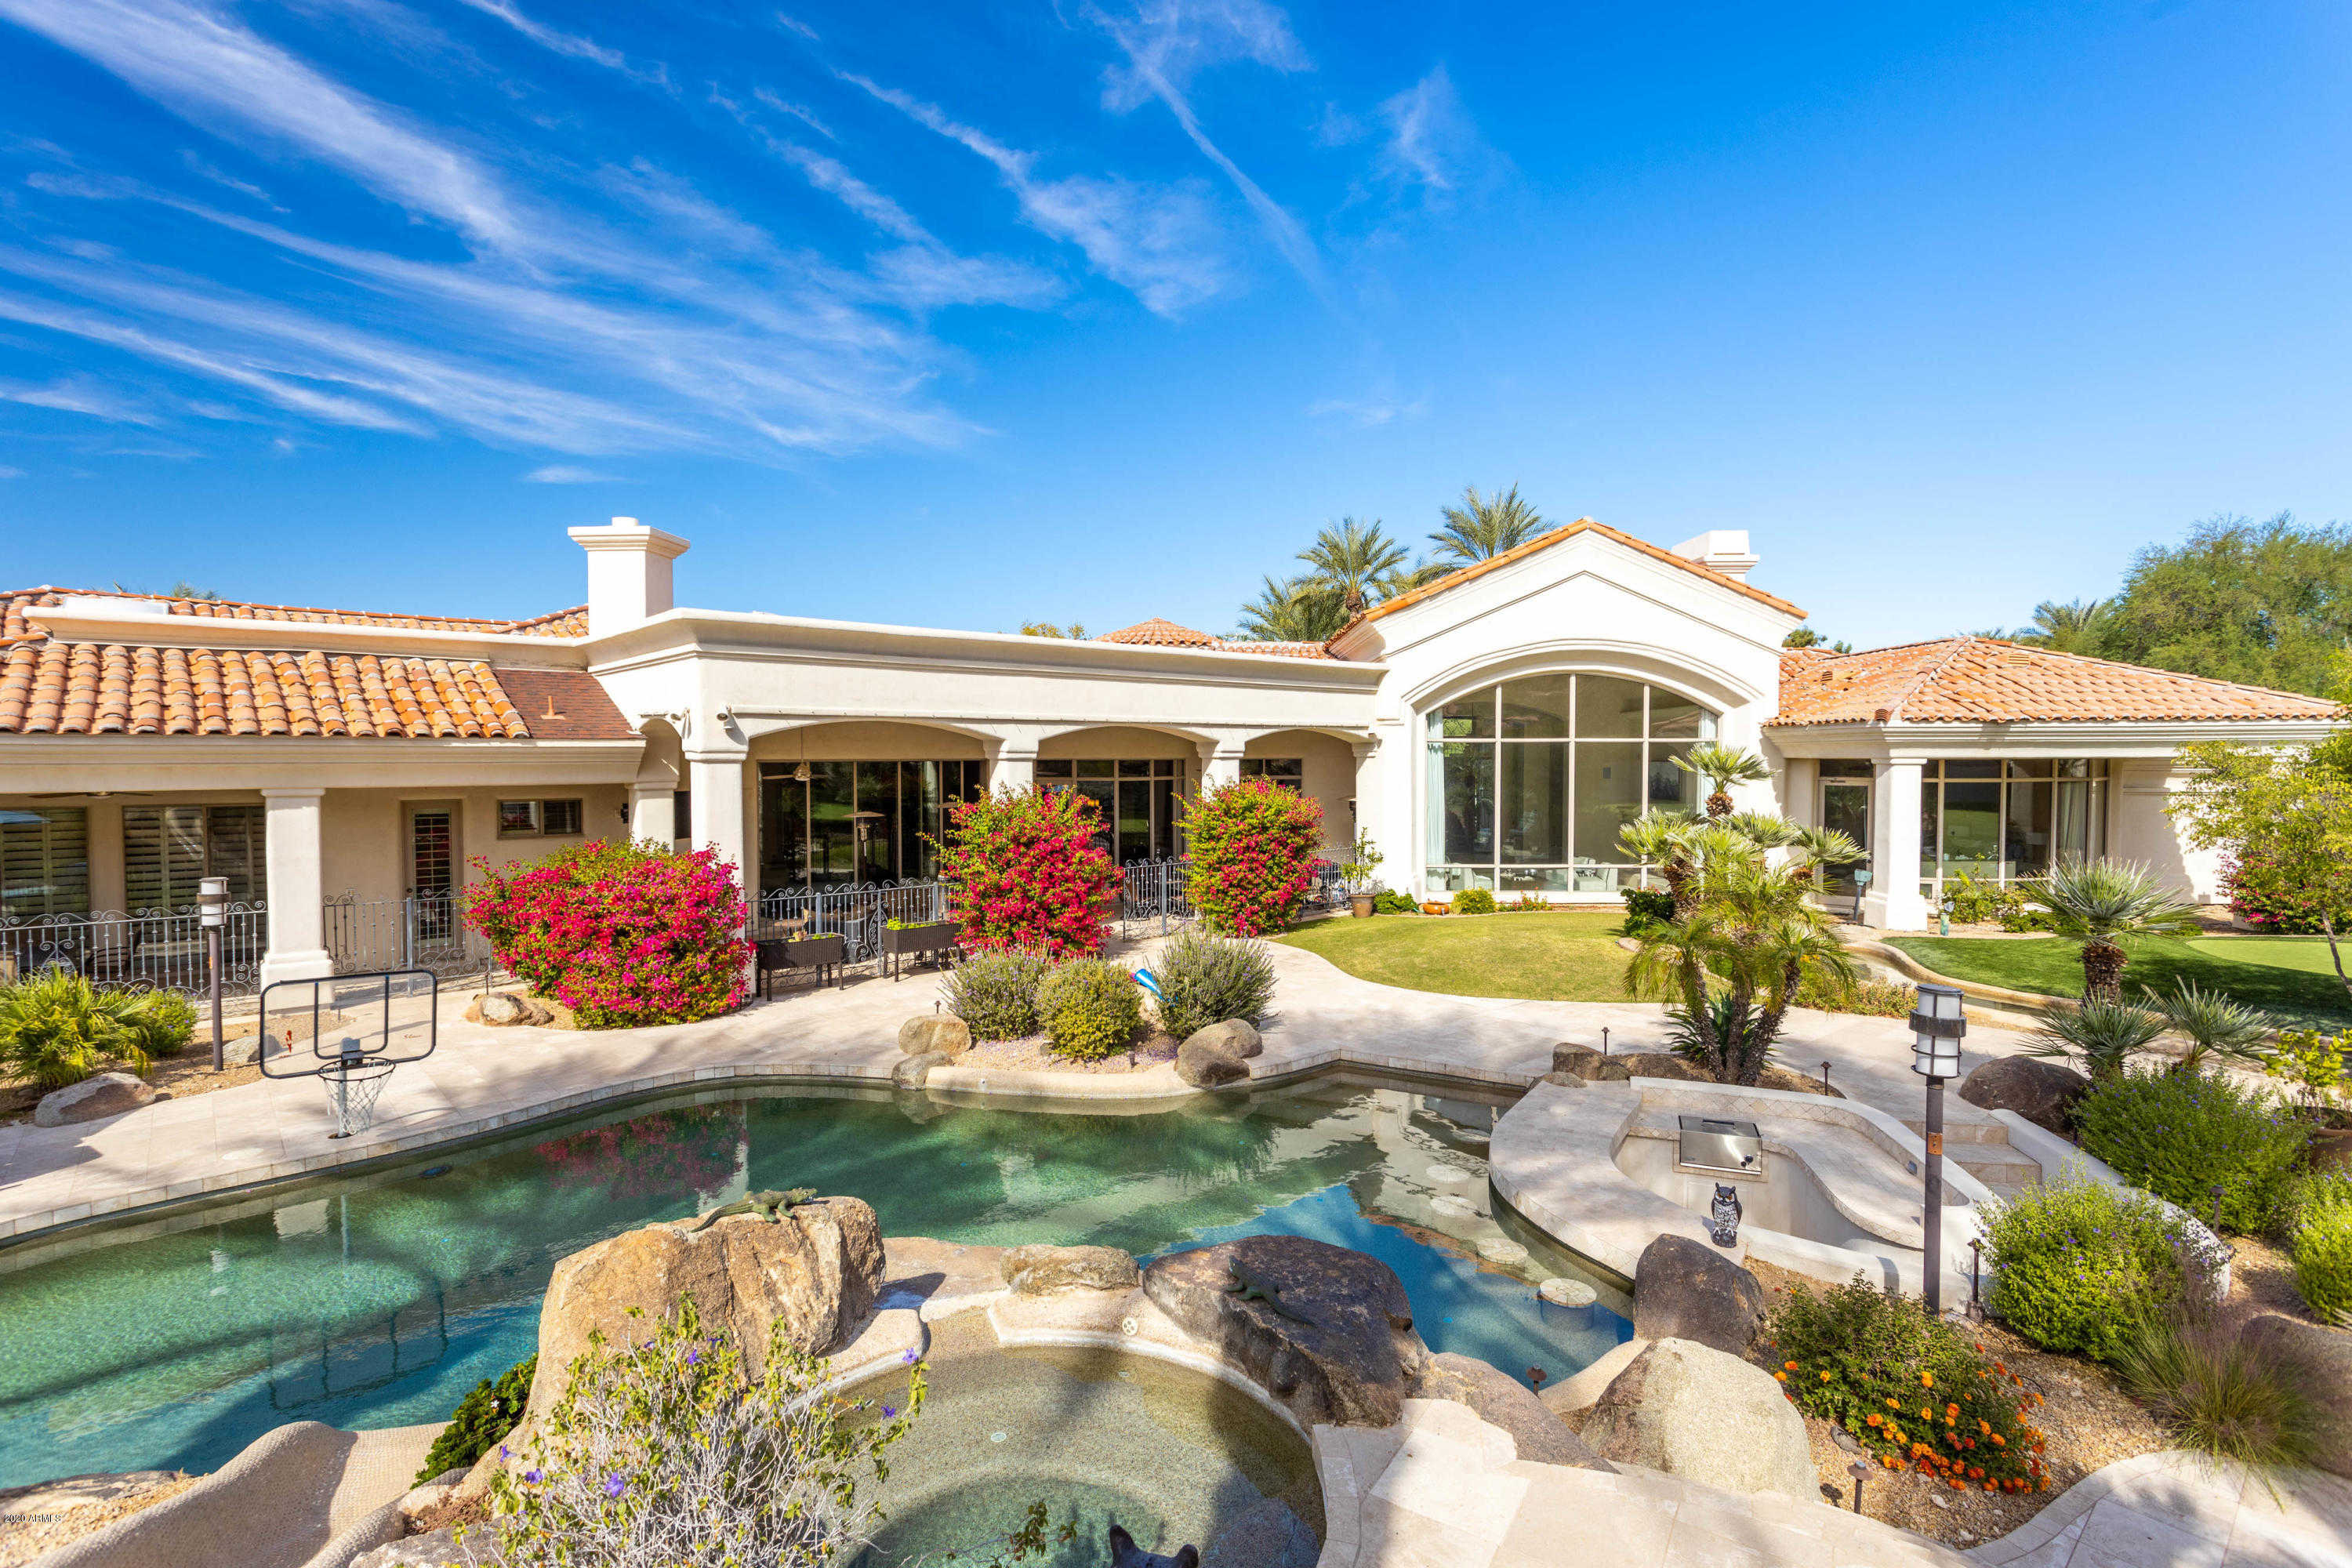 $3,350,000 - 5Br/7Ba - Home for Sale in Canyon Horizons, Paradise Valley